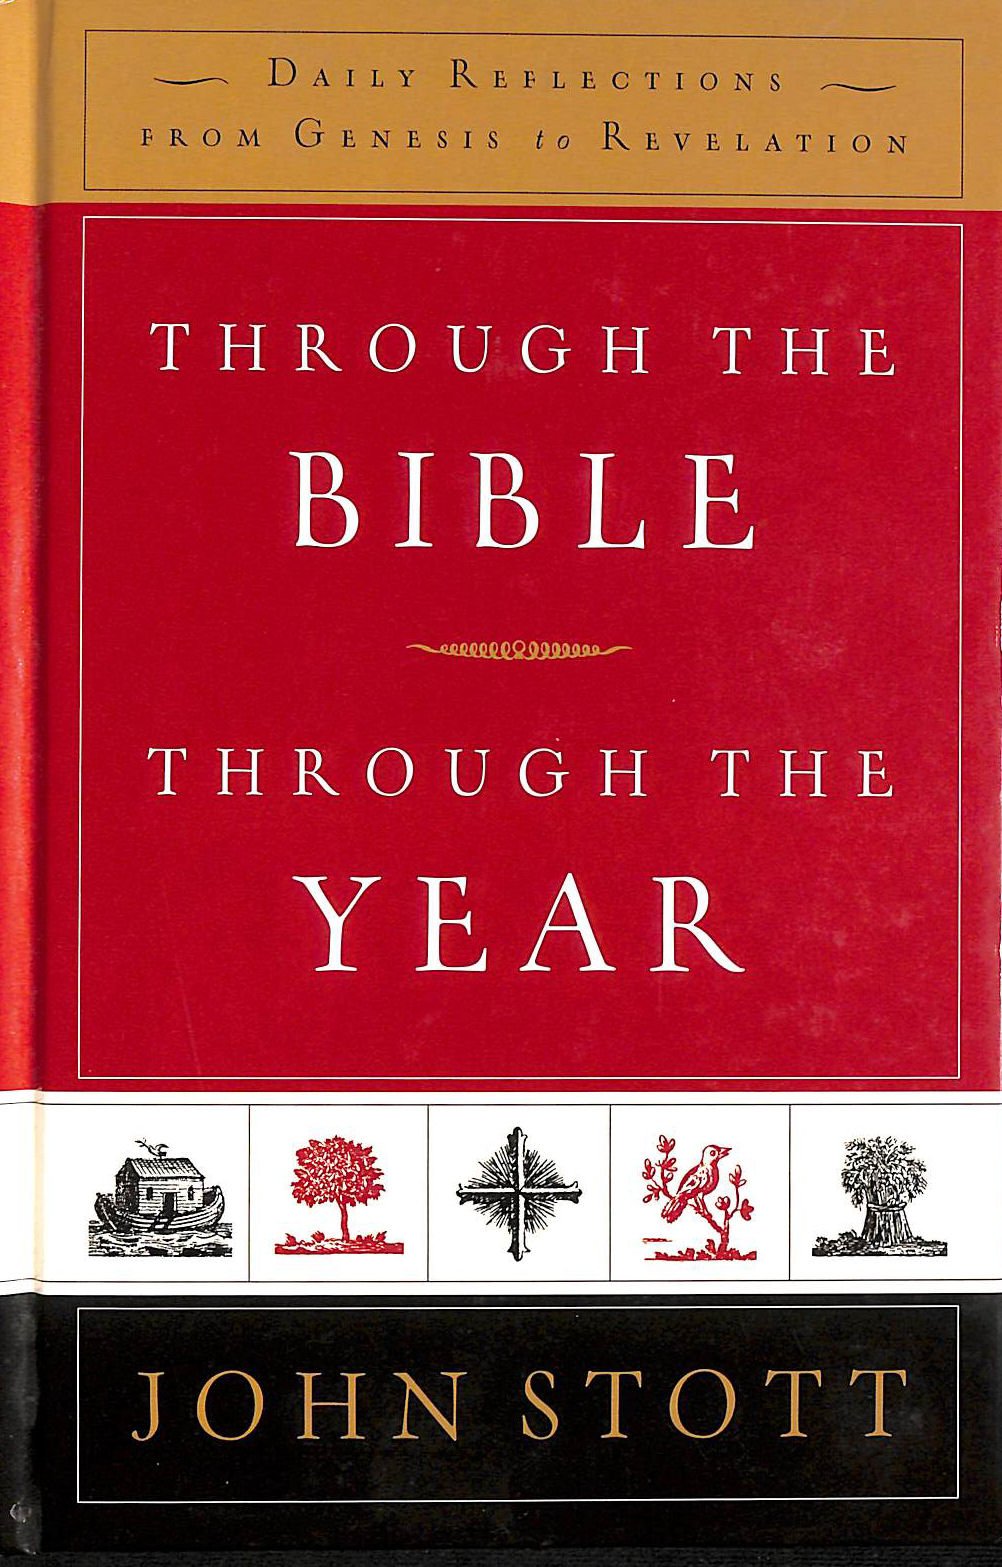 Image for Through the Bible, Through the Year: Daily Reflections From Genesis to Revelation